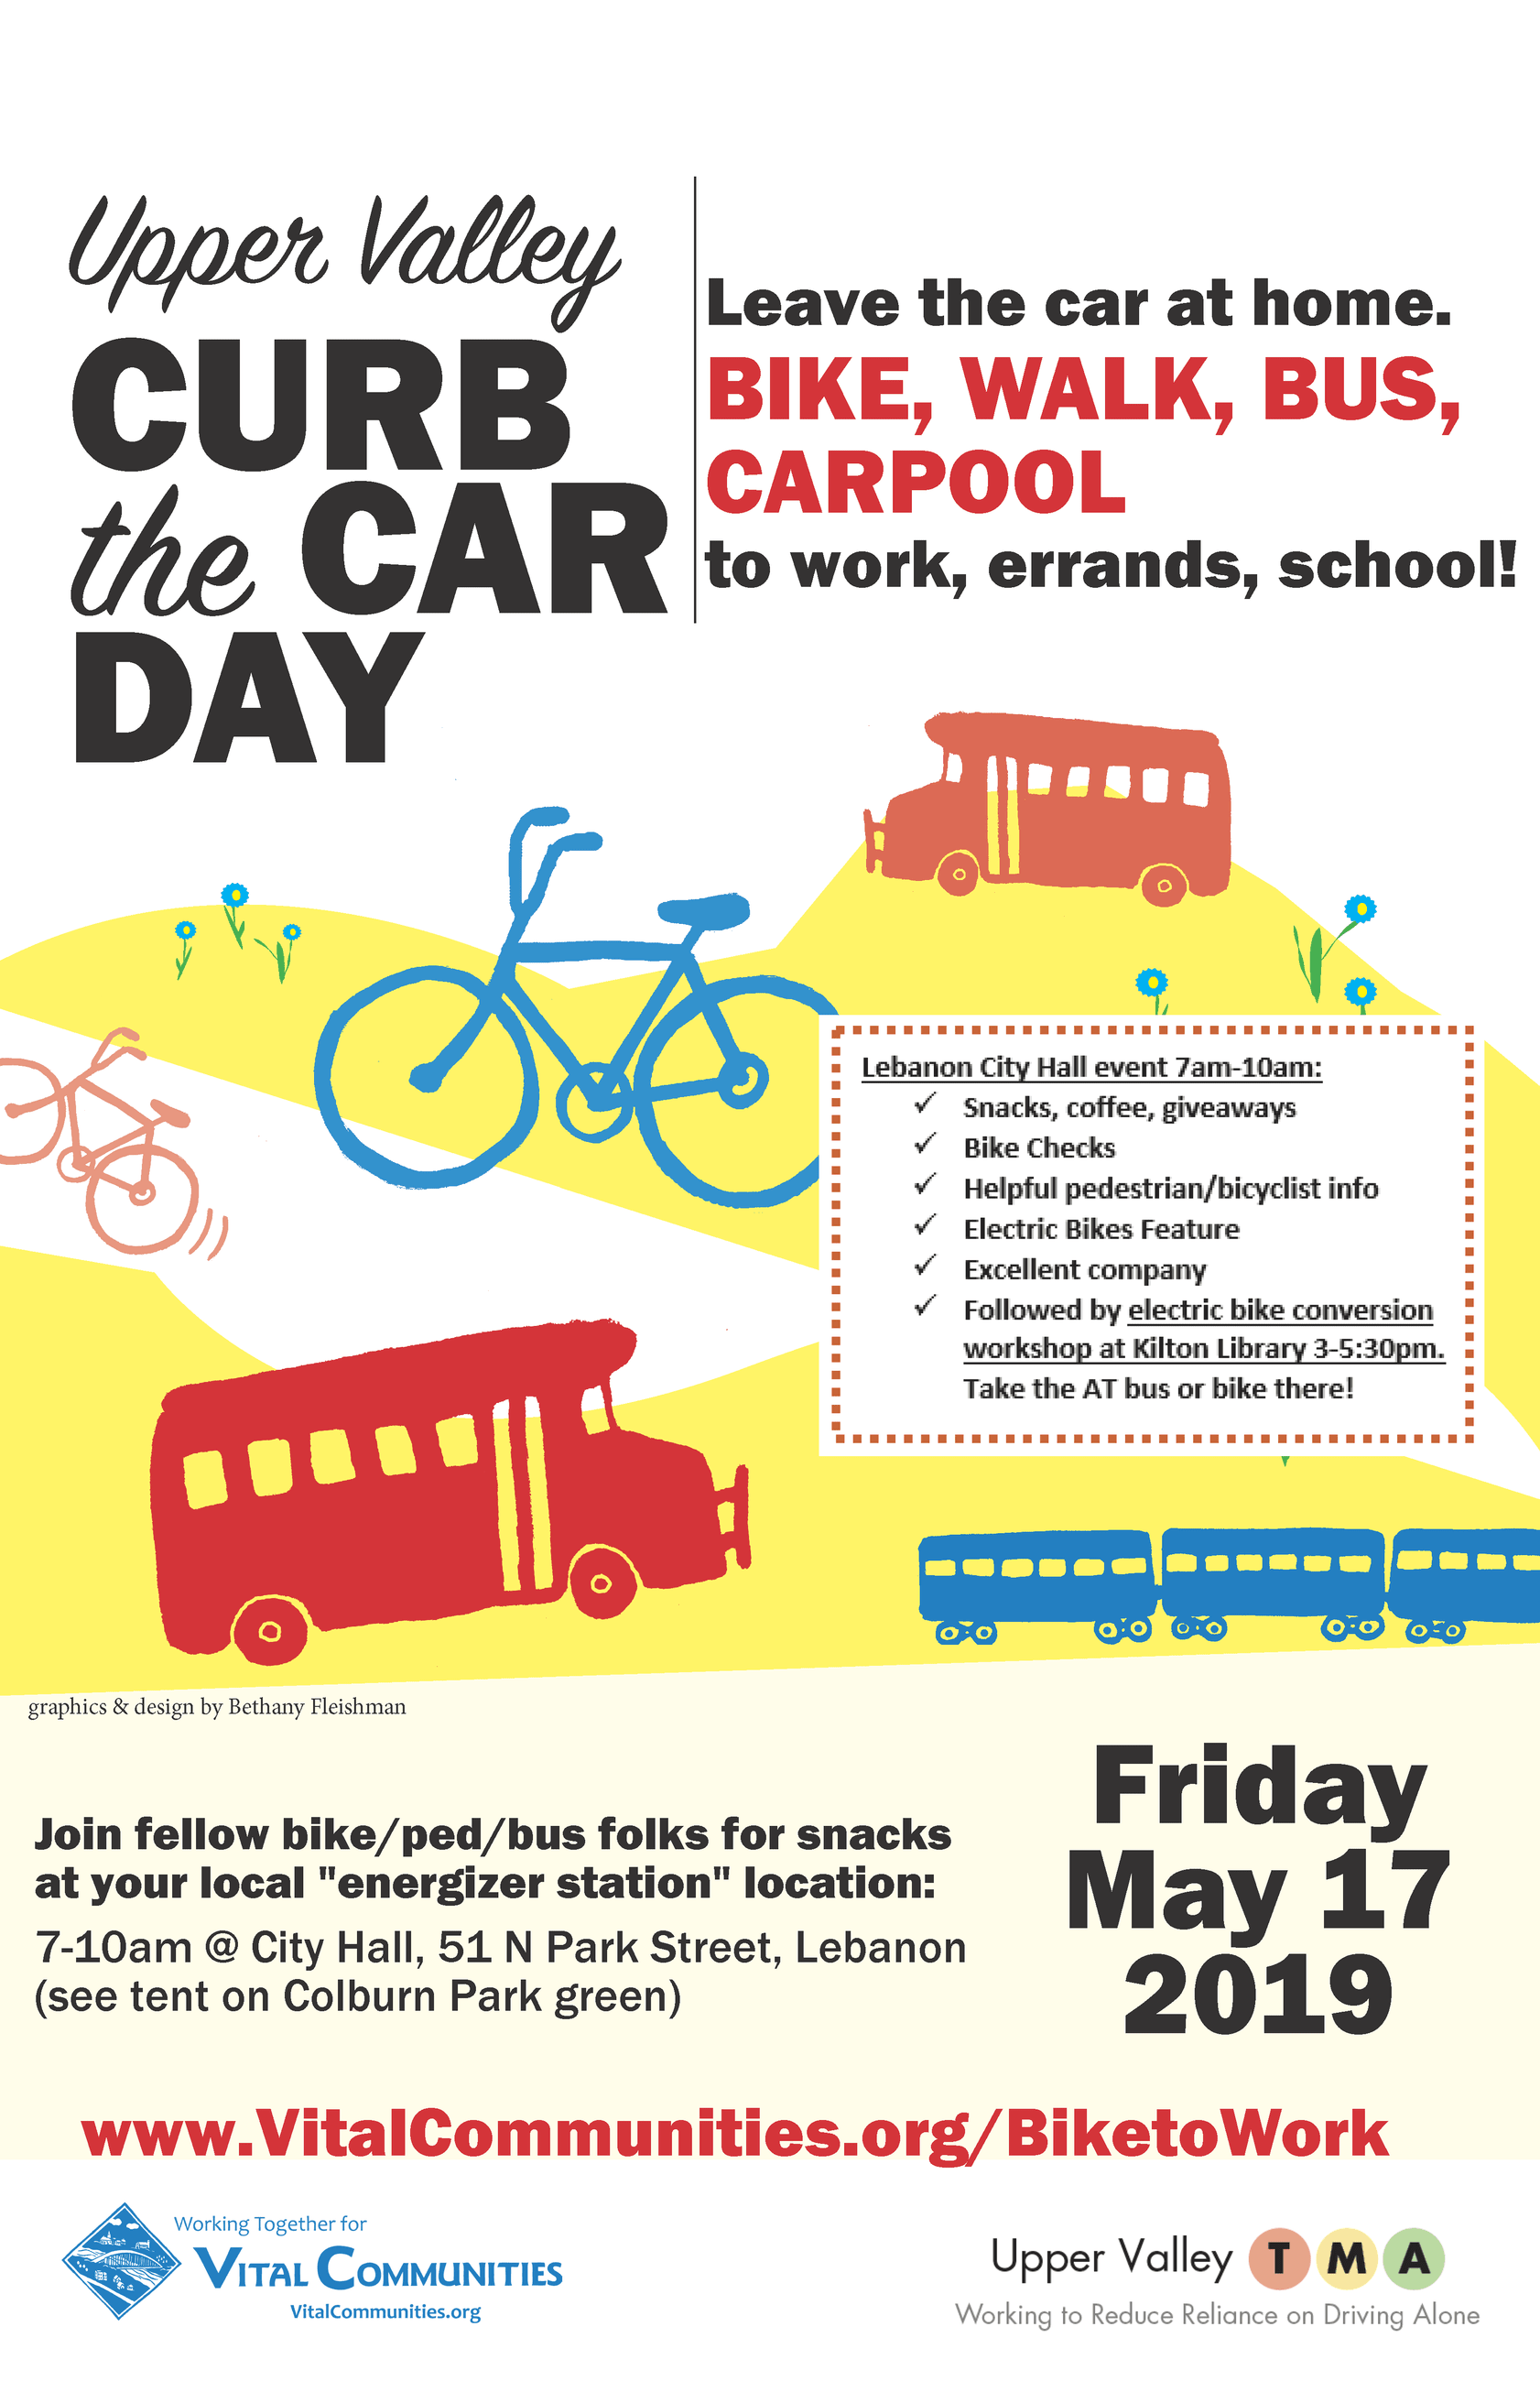 Curb The Car Day promotional flyer